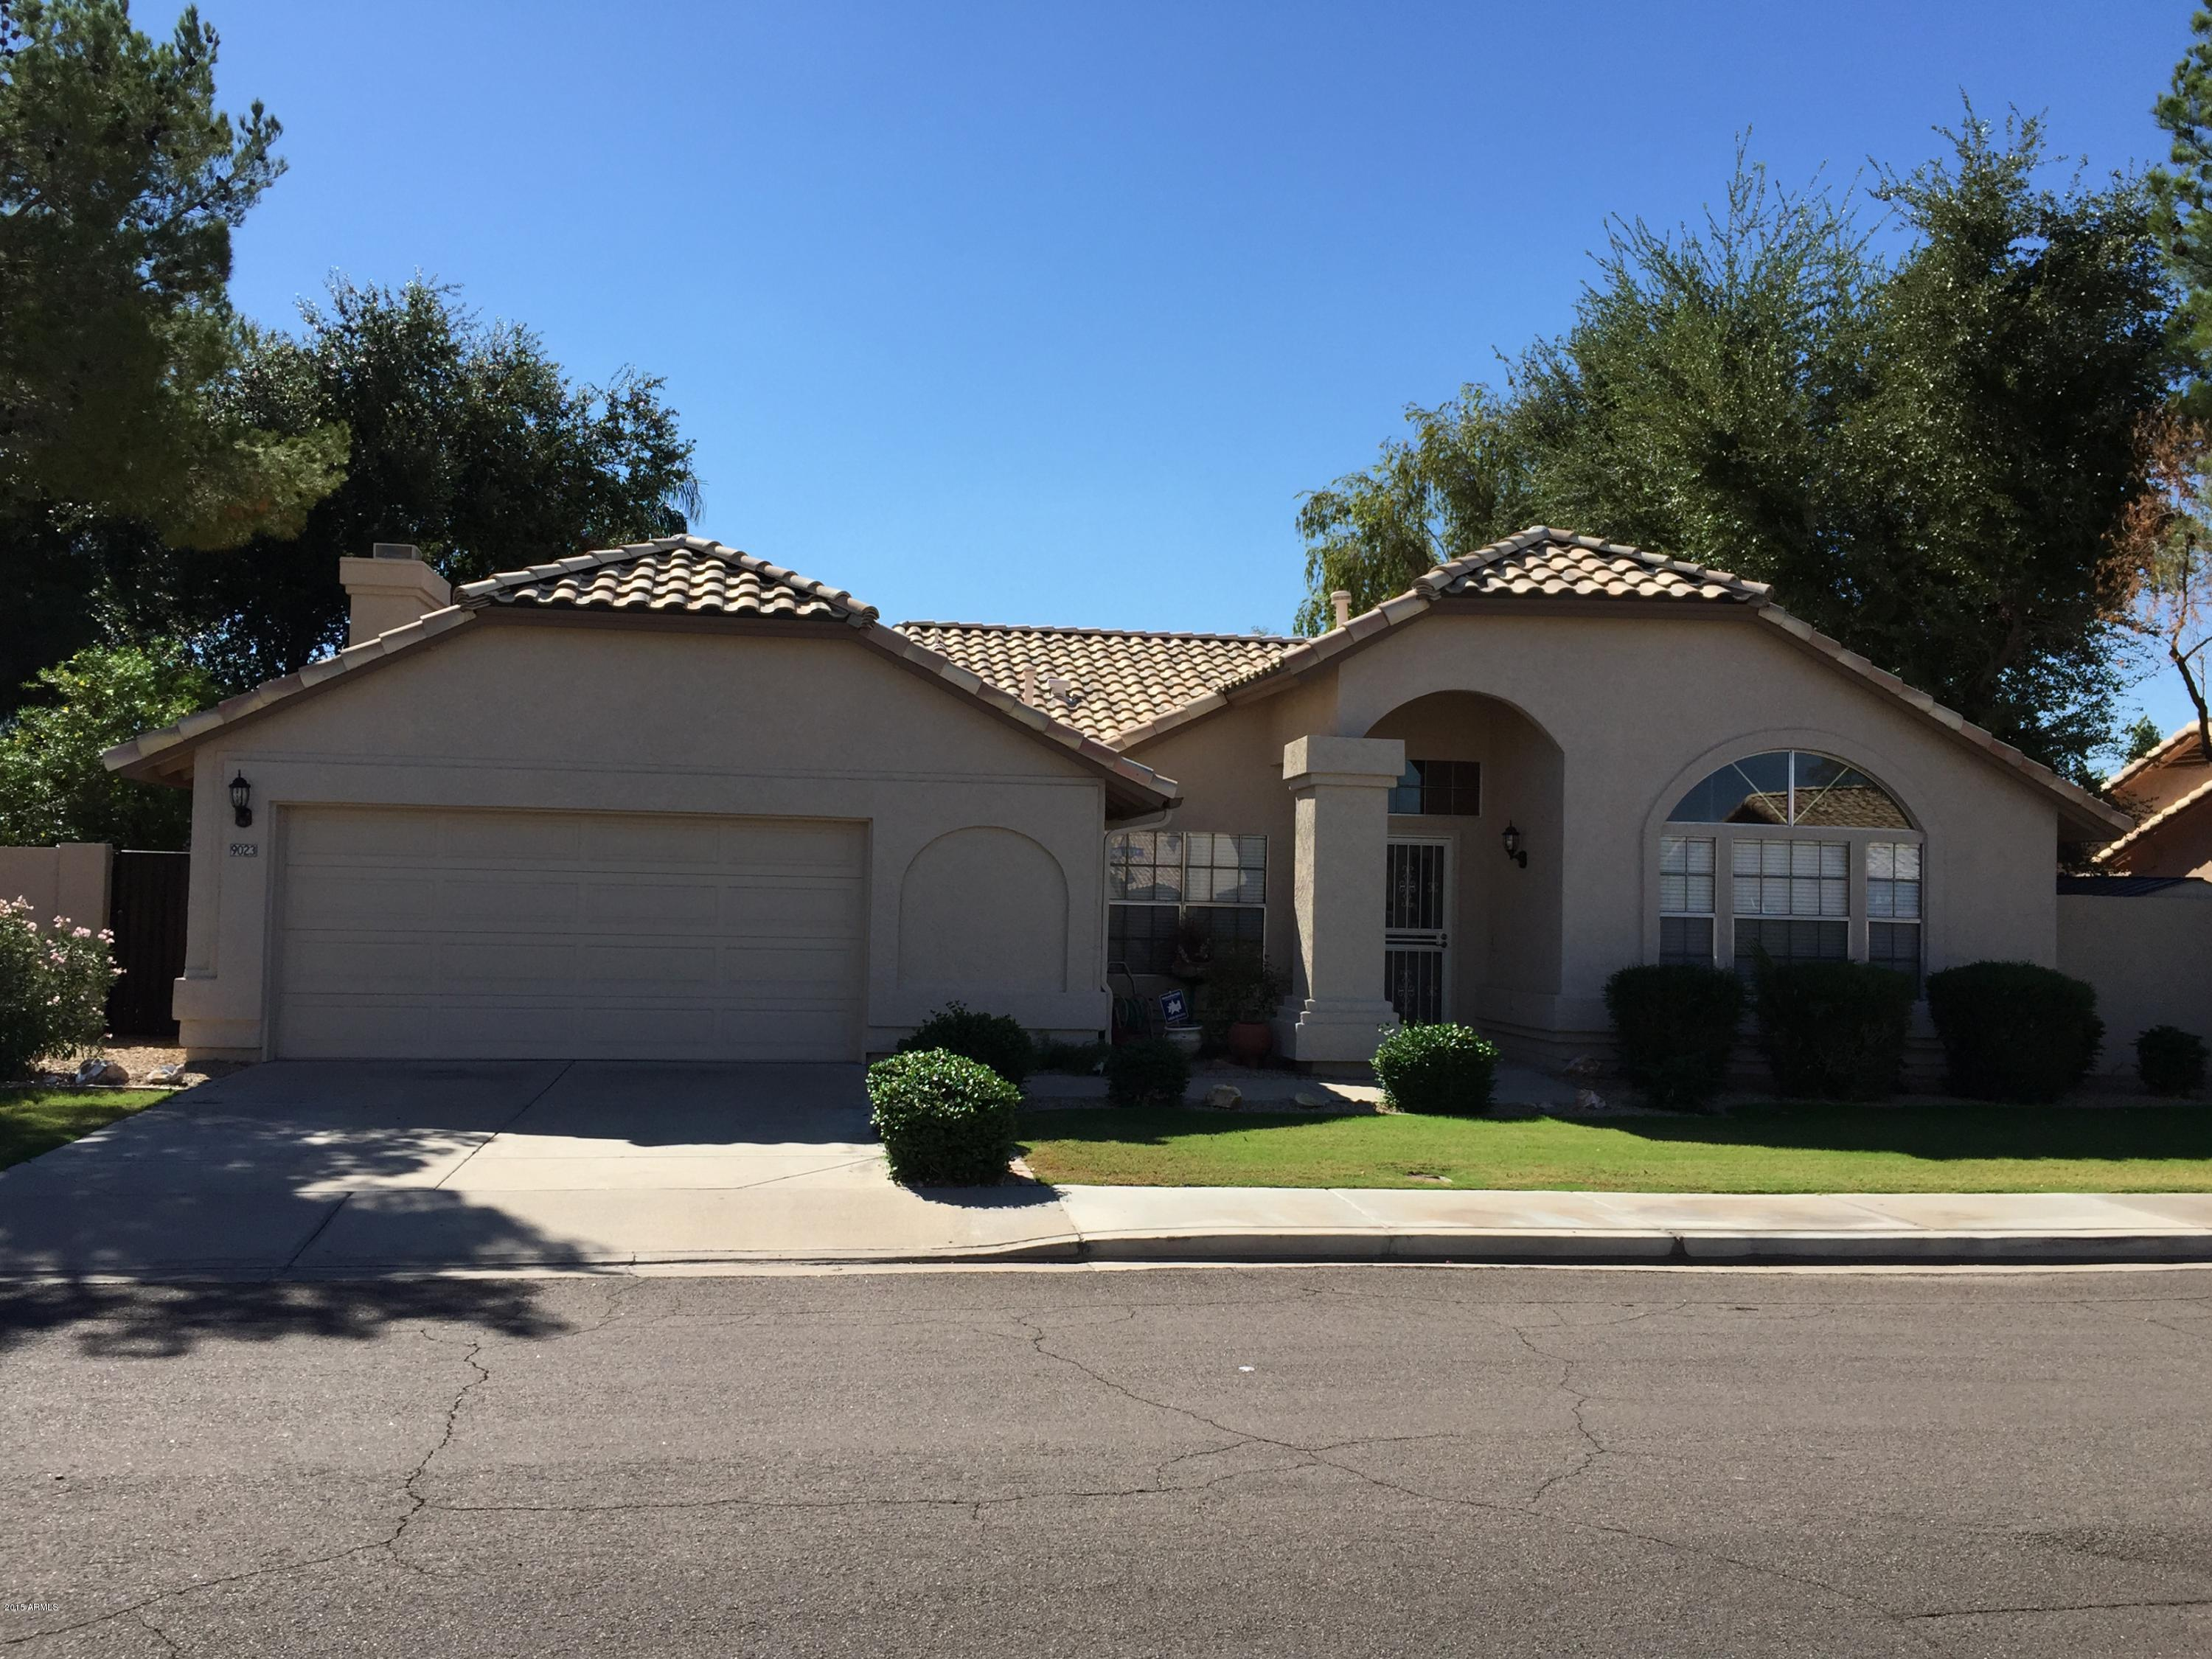 Photo of 9023 W Lisbon Lane, Peoria, AZ 85382